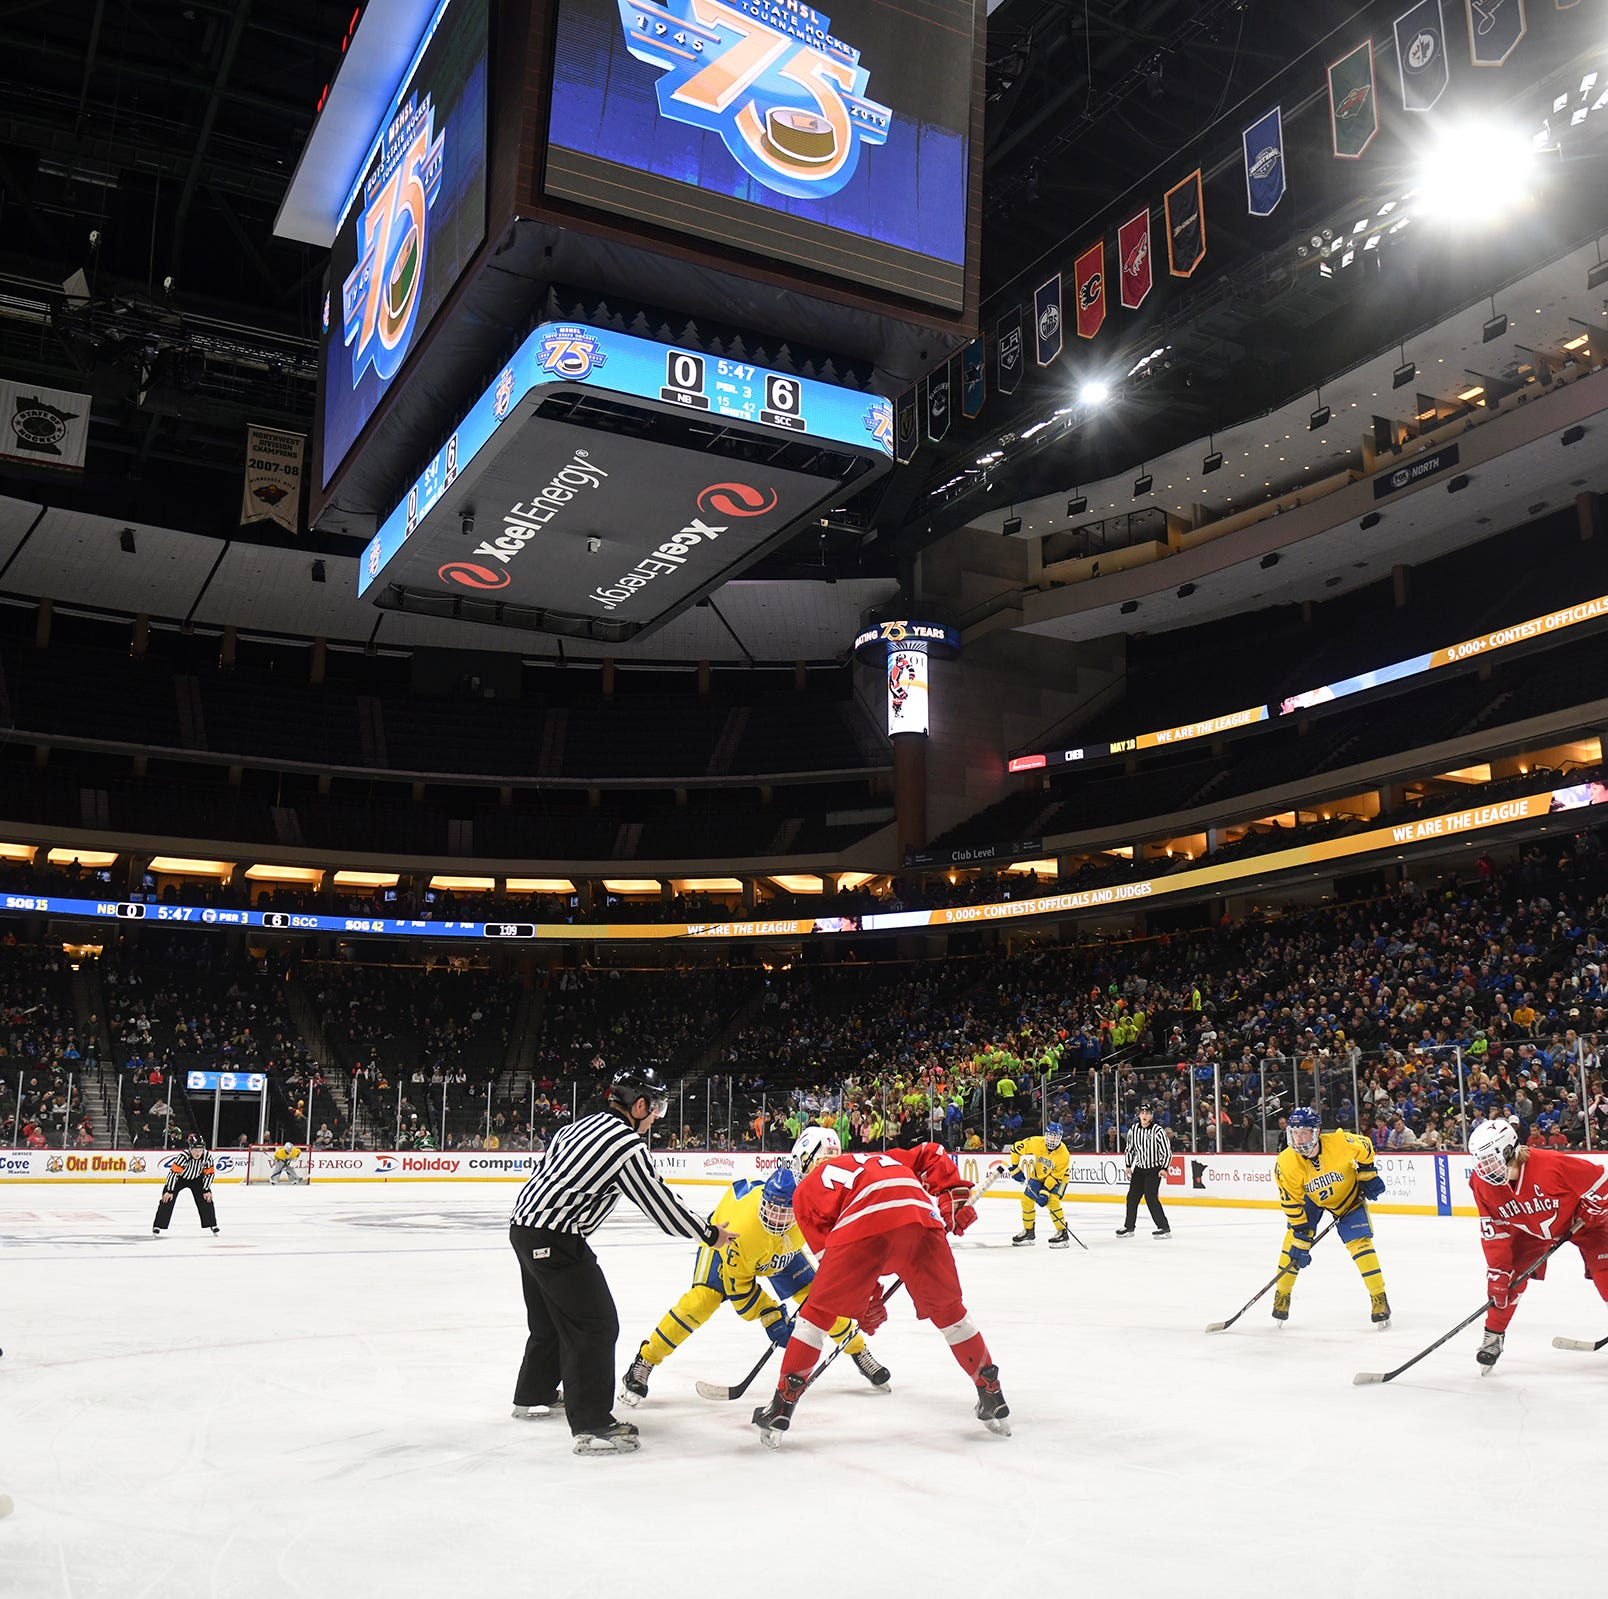 Hockey announcer apologizes for lynching comment